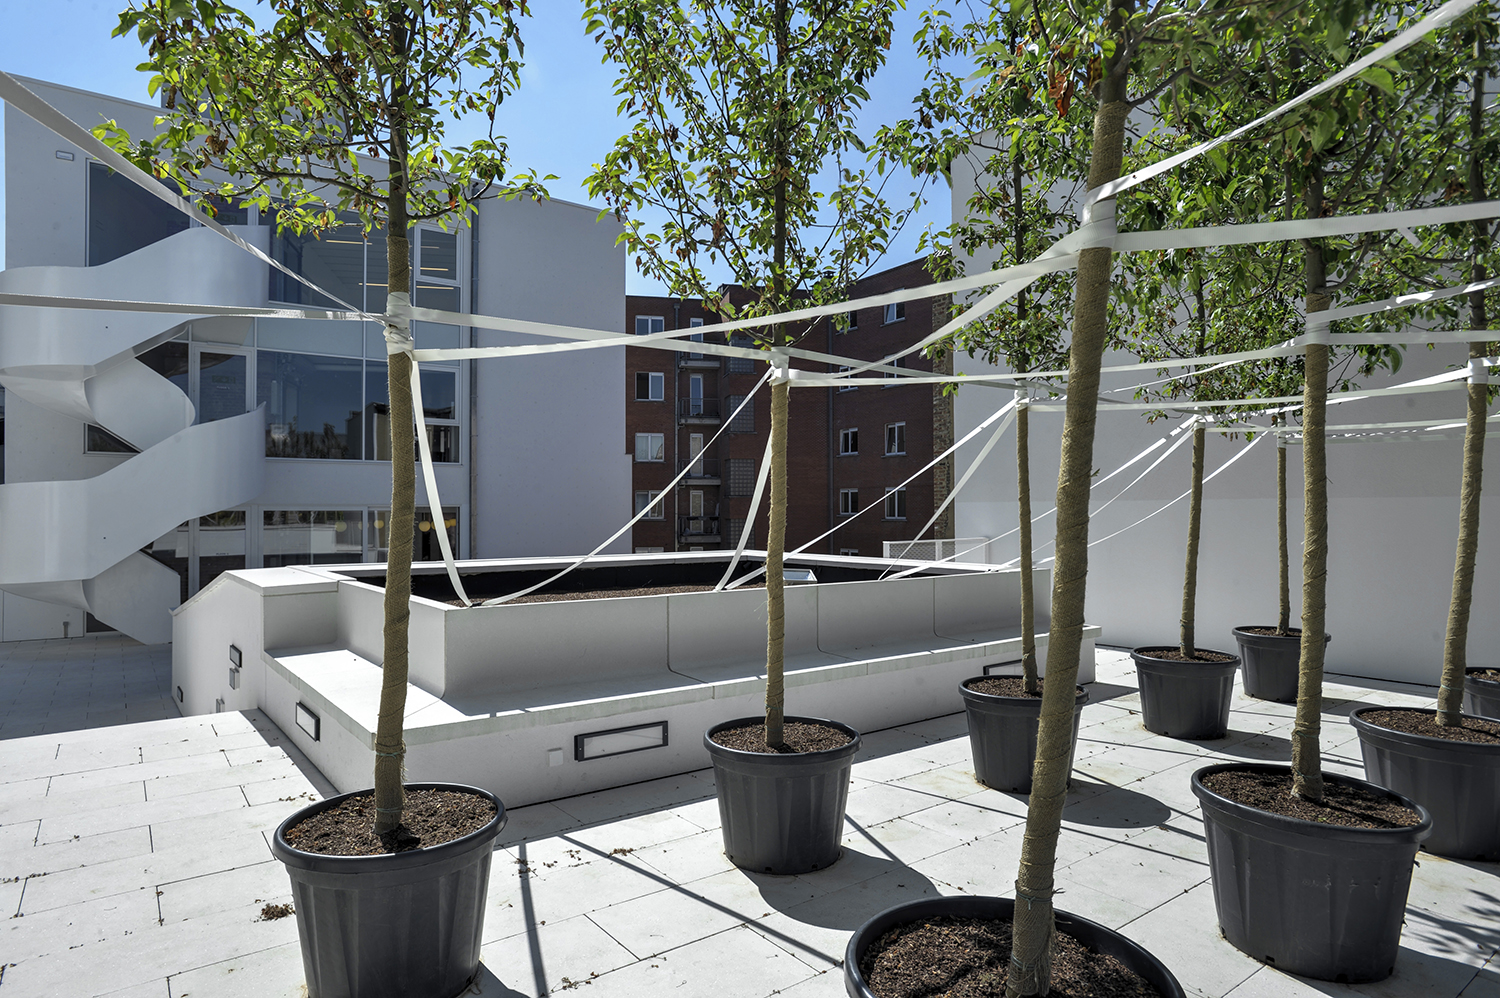 Terrace with small trees and a building in the background